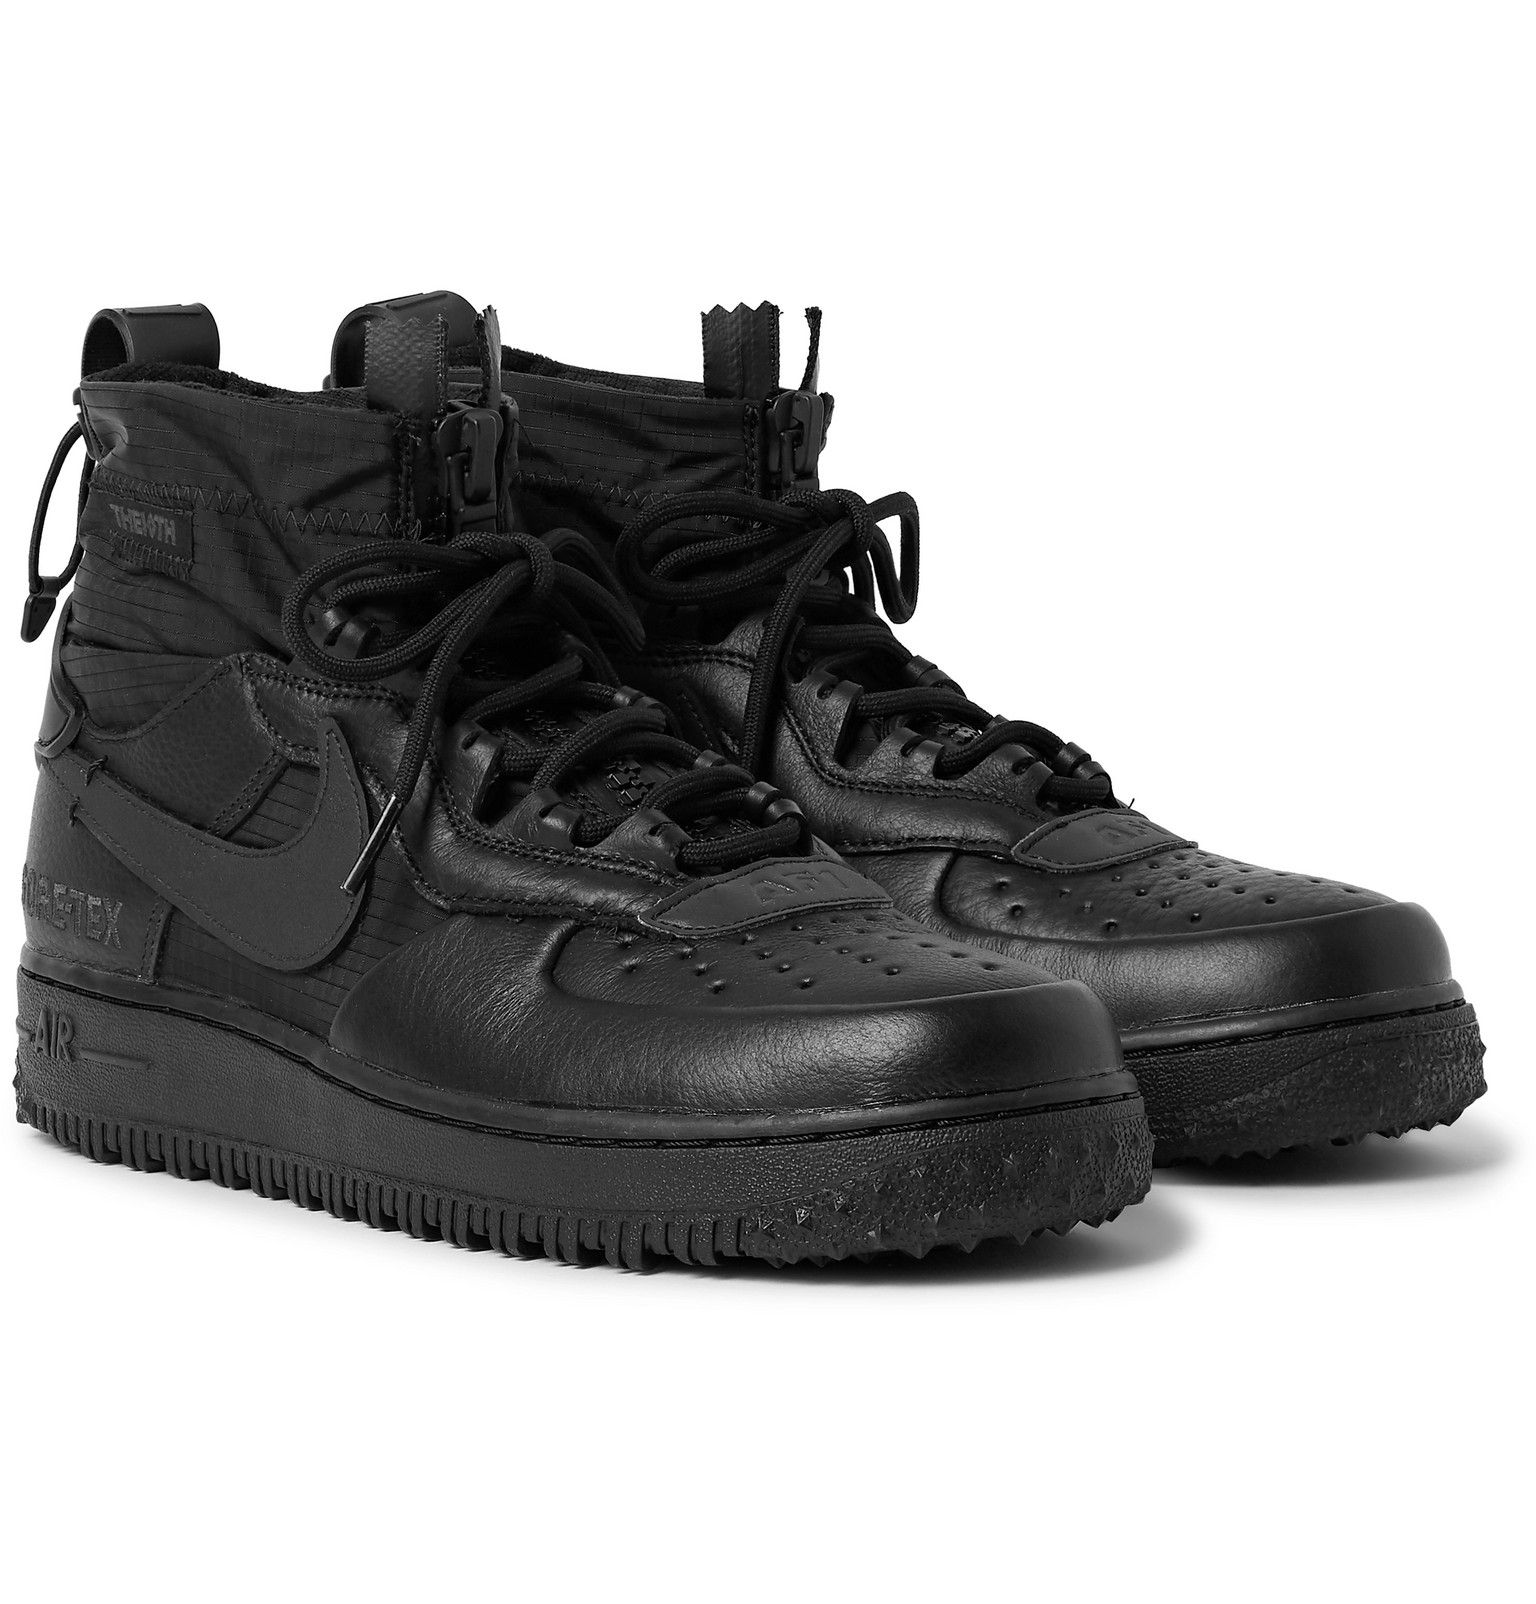 ilegal Mariscos Mascotas  Nike - Air Force 1 Winter GORE-TEX and Leather High-Top Sneakers - Men -  Black | Nike air shoes, Nike shoes air force, Sneakers men